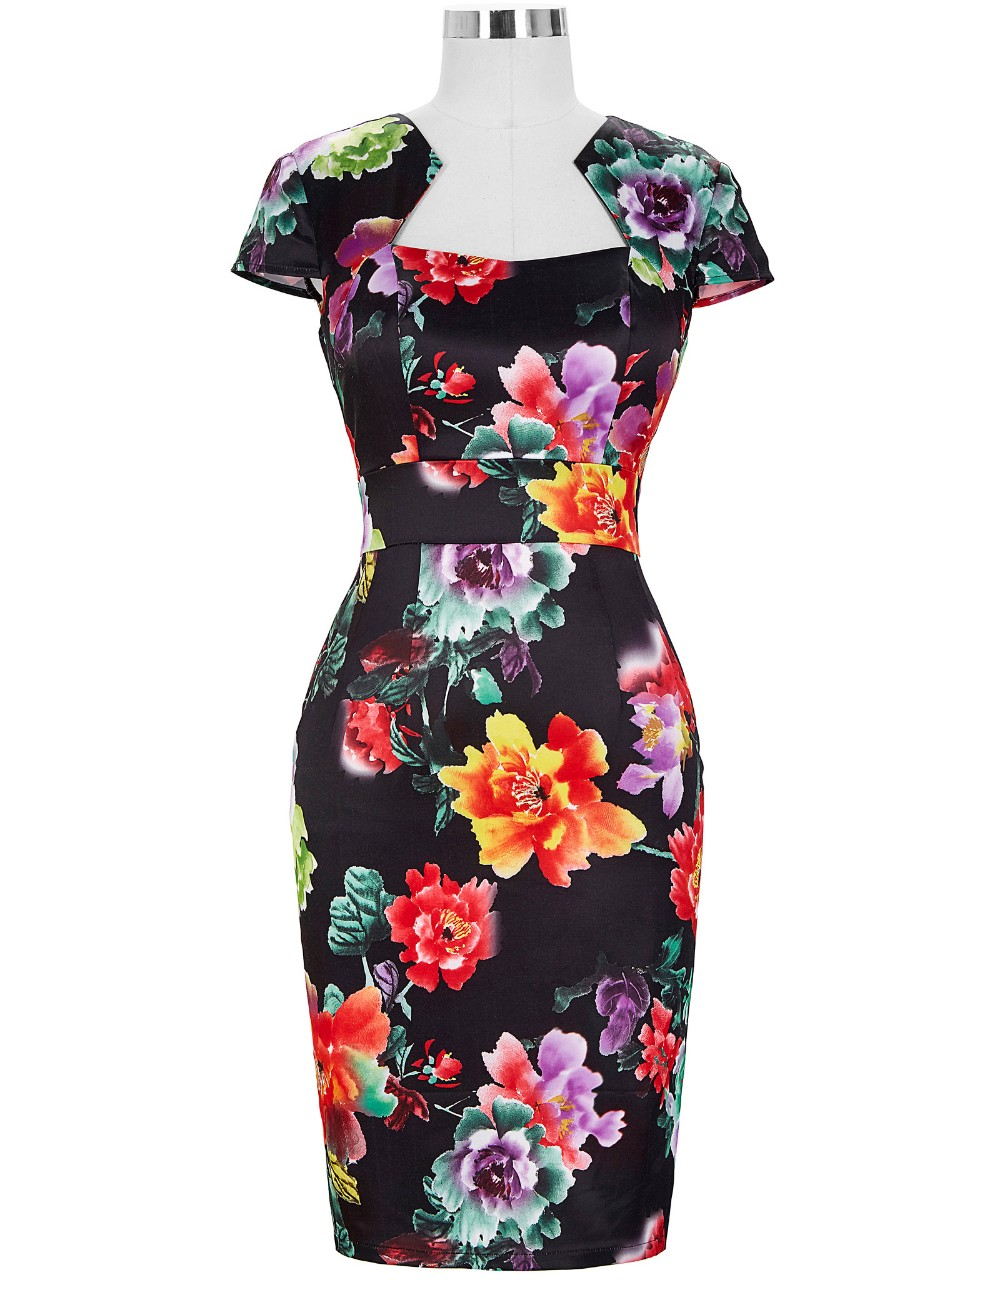 Women Plus Size Pencil Dresses Rockabilly Clothing 2018 Floral Summer Casual Party Office Dress Sexy 50s Vintage Bodycon Dress 20